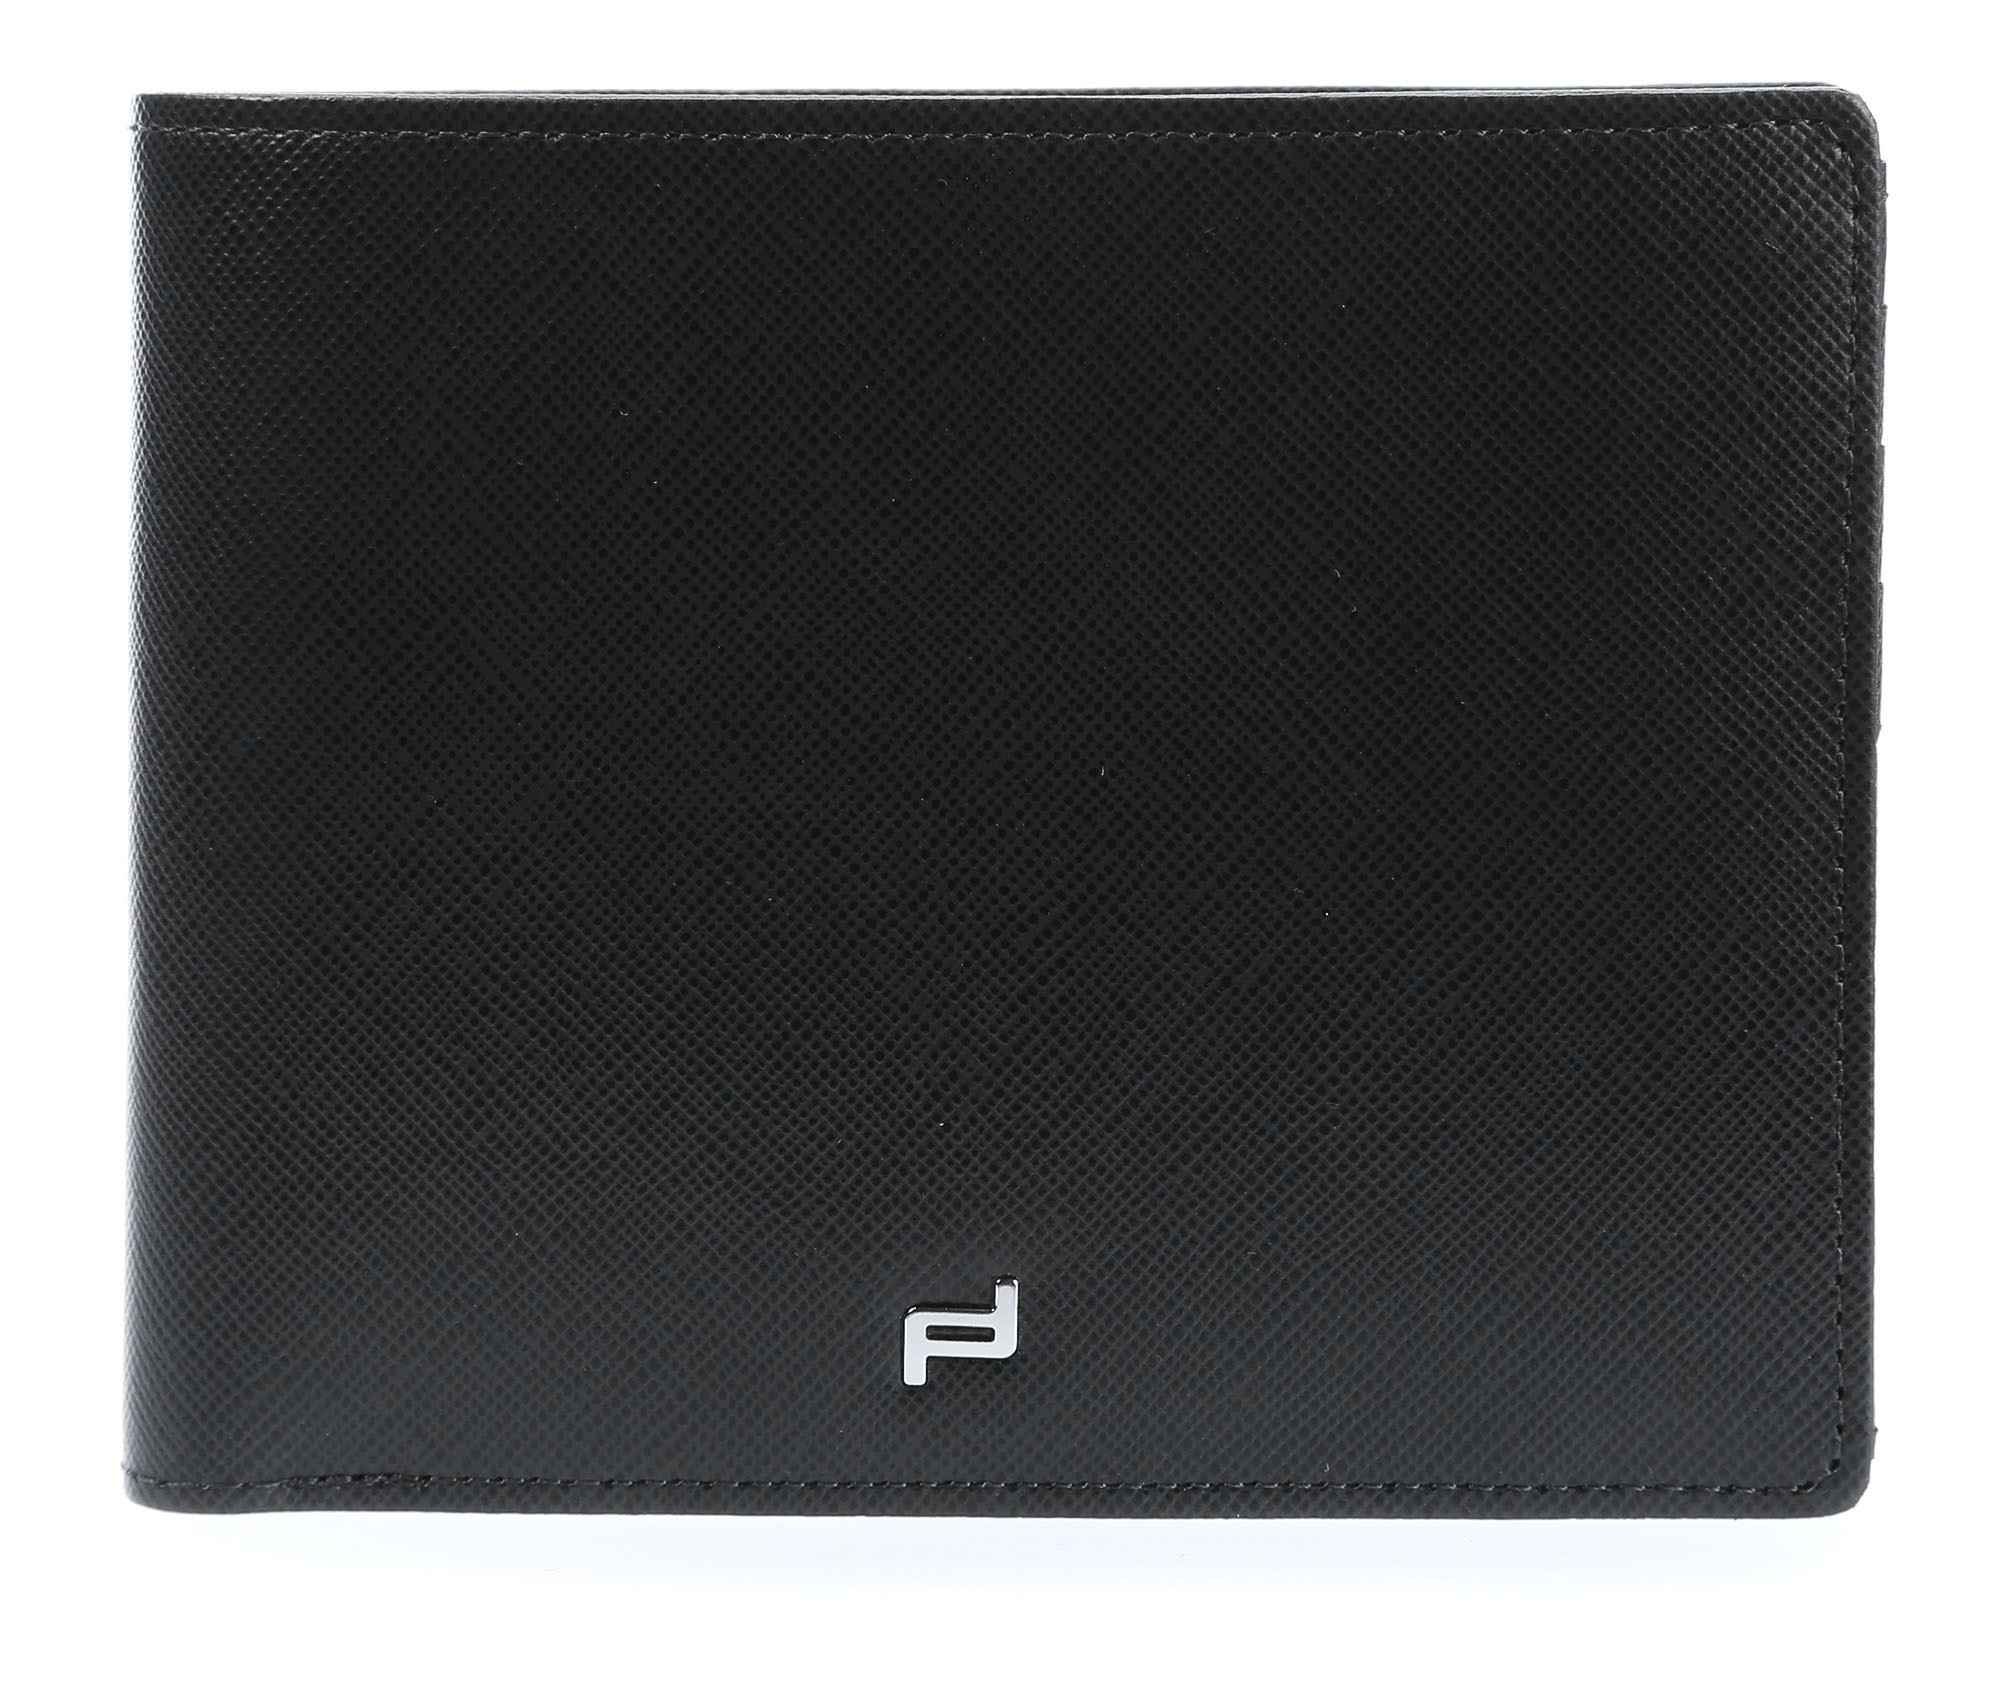 porsche design portemonnaie billfold h10 saffiano porsche. Black Bedroom Furniture Sets. Home Design Ideas